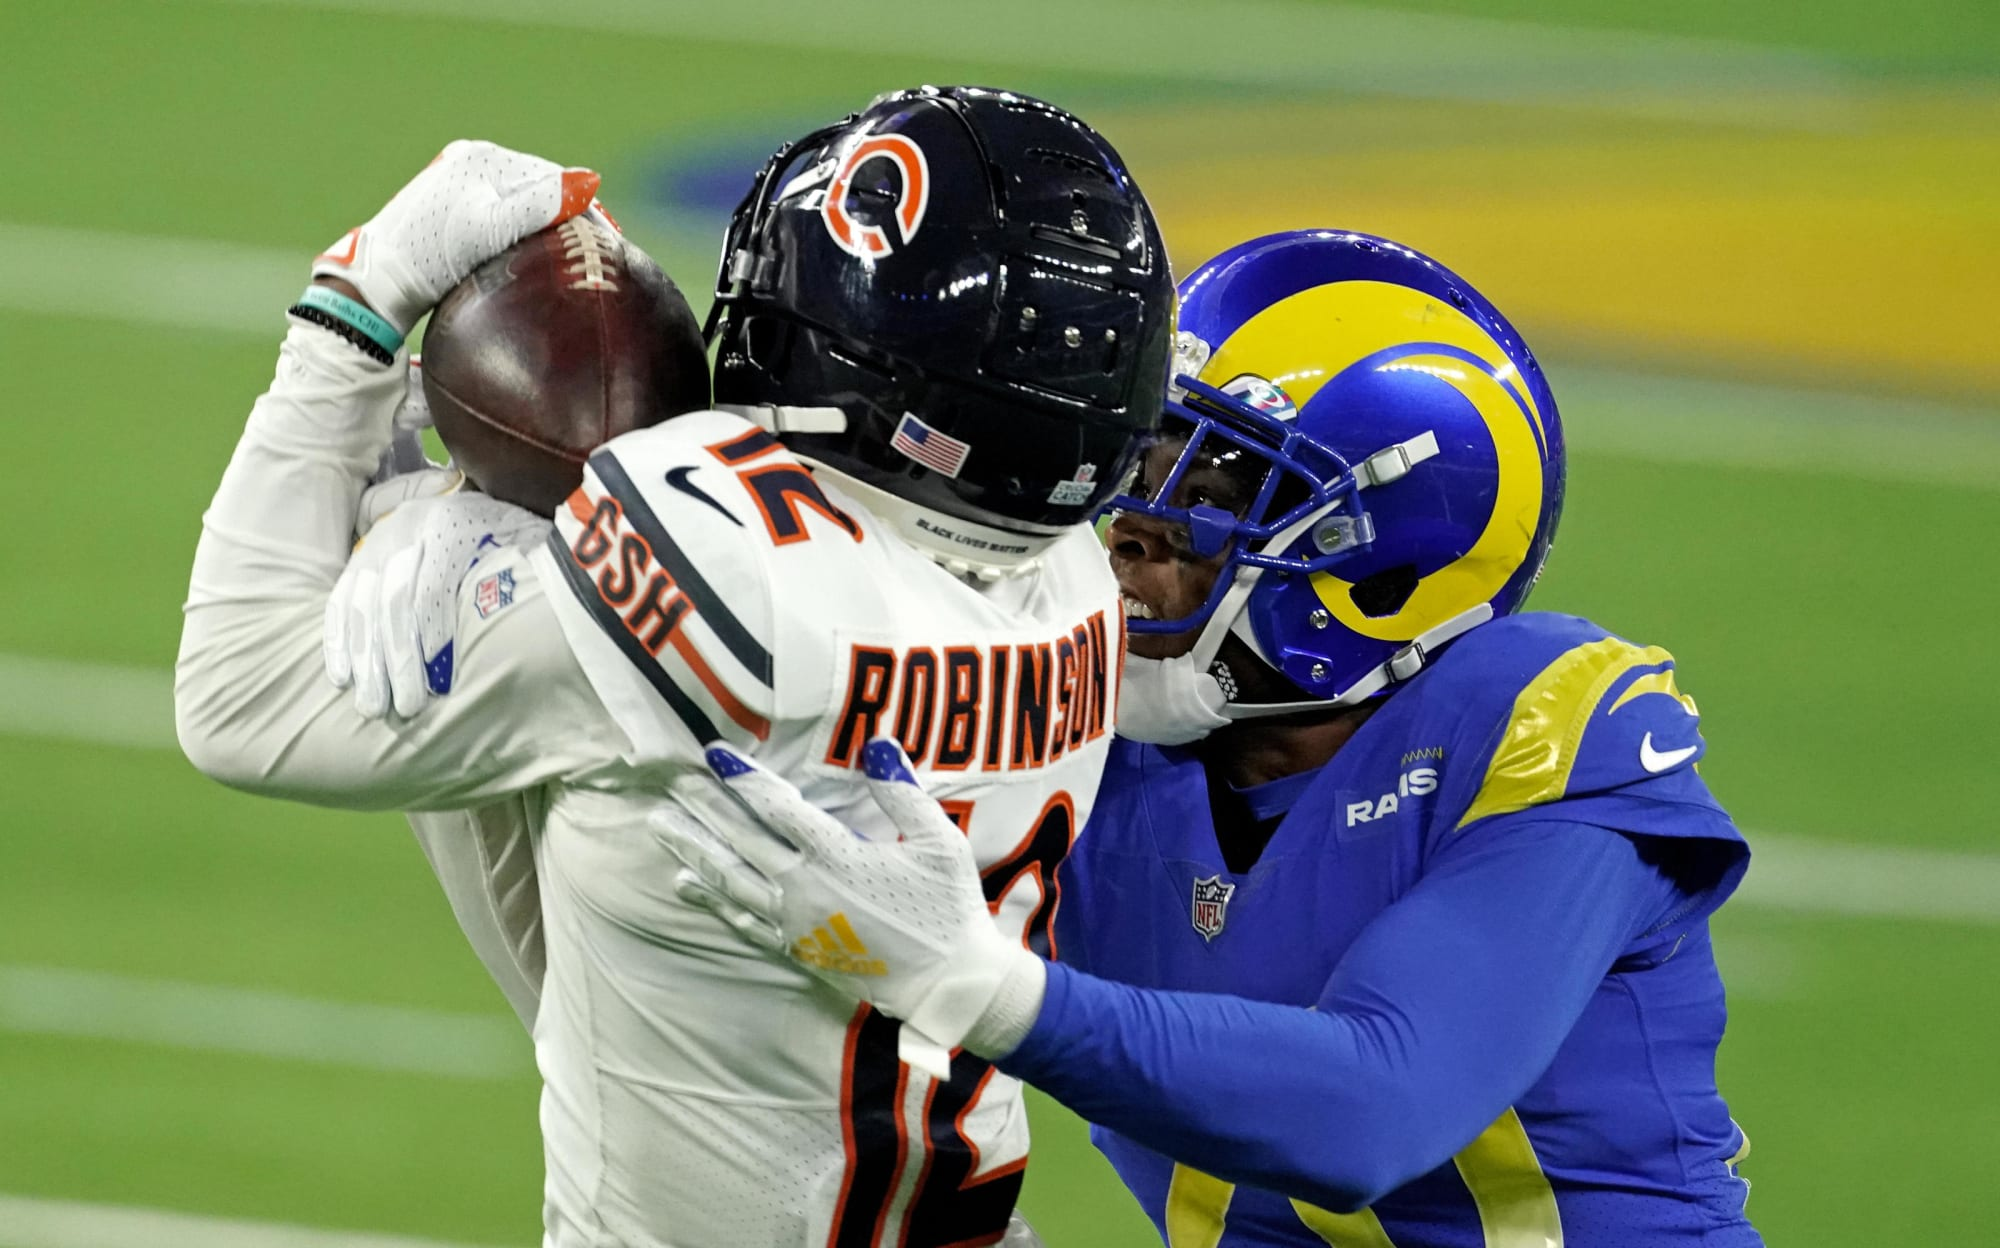 2021 NFL Schedule News: Chicago Bears reportedly opening on Sunday Night Football